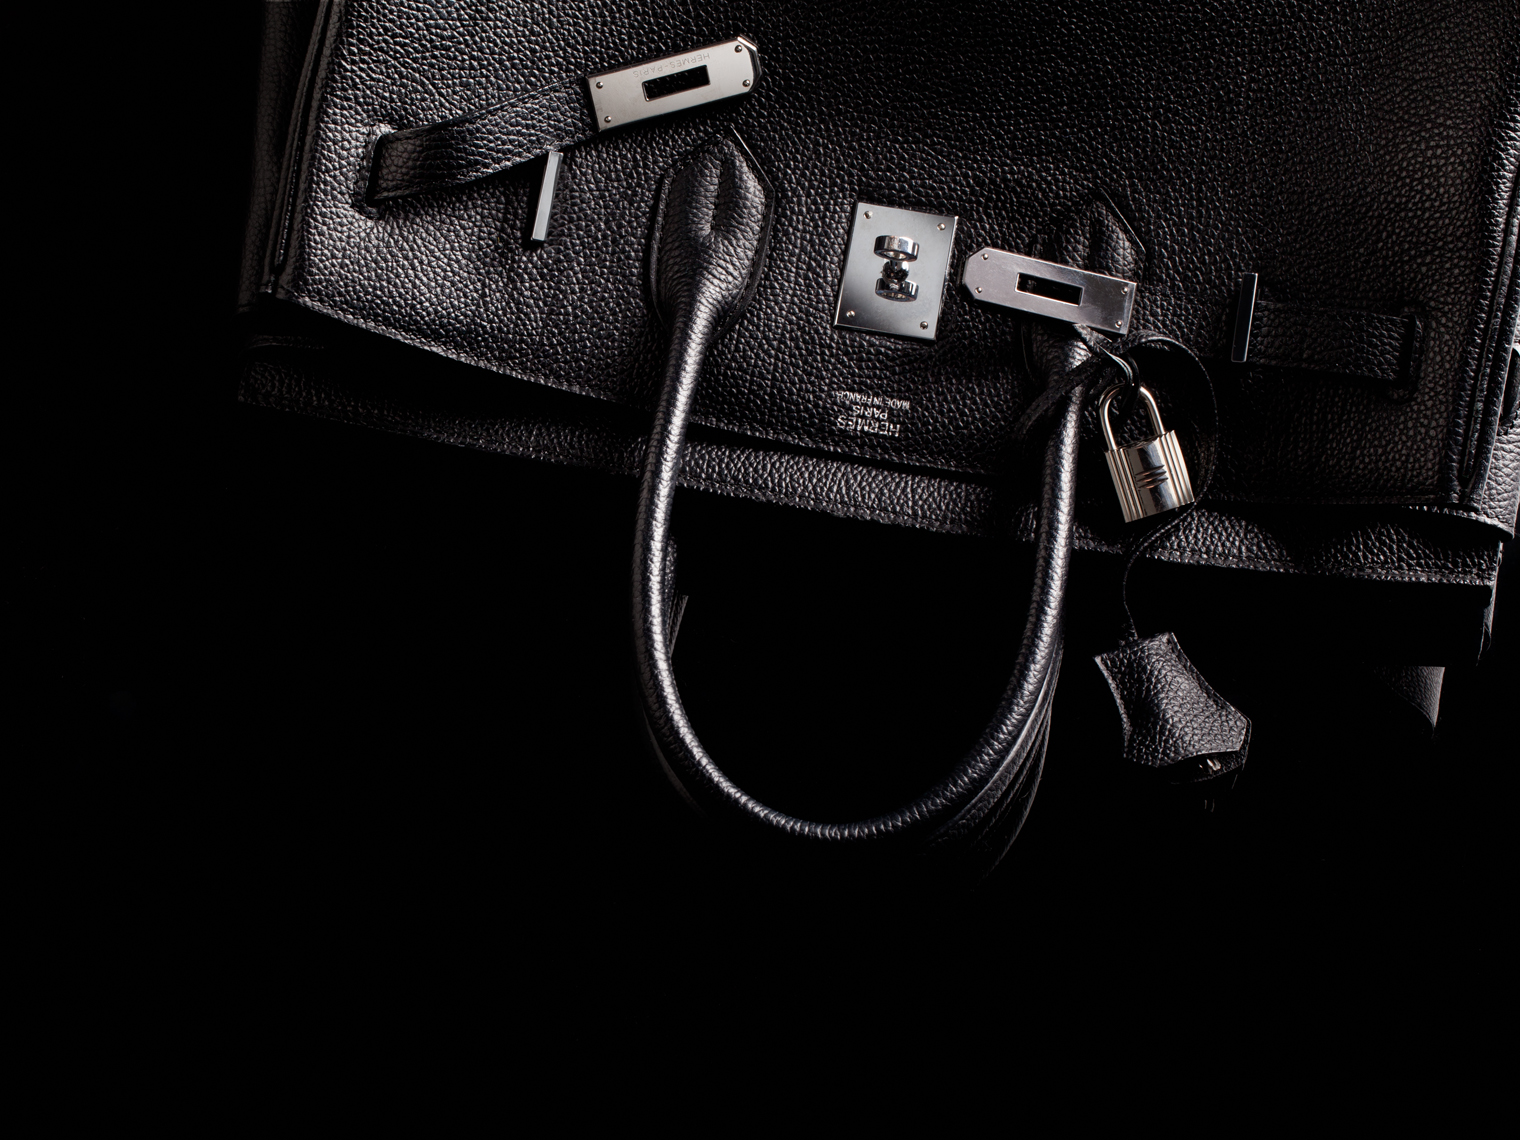 hermes handbag - still life photographer los angeles